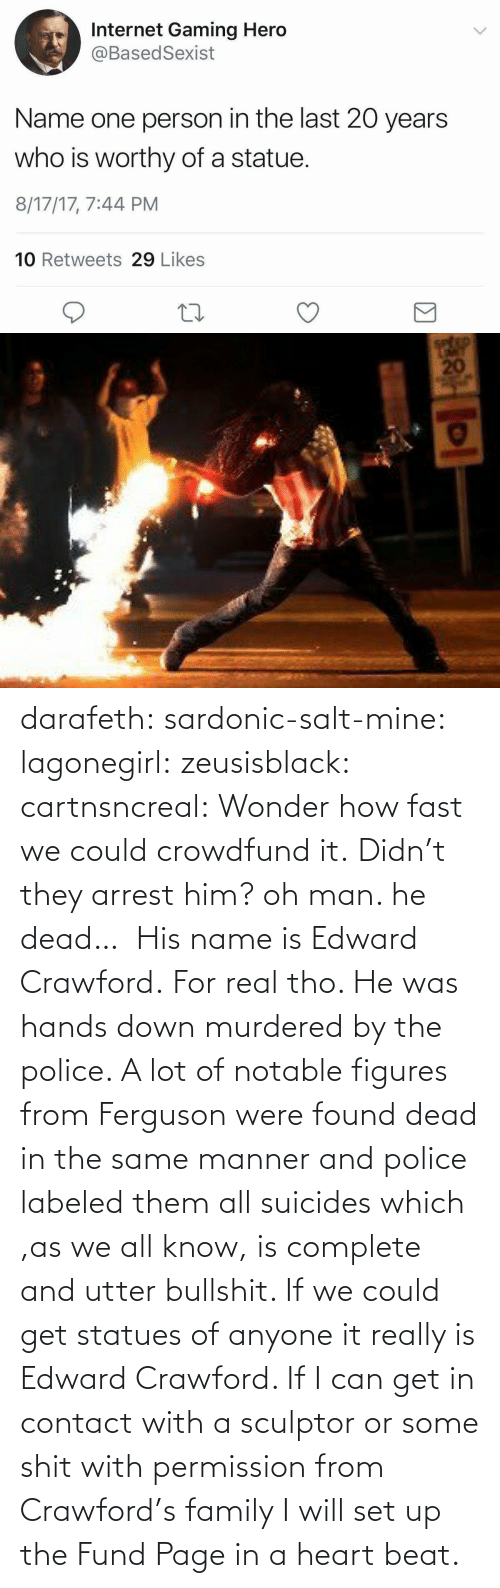 Didn: darafeth: sardonic-salt-mine:  lagonegirl:  zeusisblack:  cartnsncreal:   Wonder how fast we could crowdfund it.    Didn't they arrest him?  oh man. he dead…   His name is Edward Crawford.   For real tho. He was hands down murdered by the police. A lot of notable figures from Ferguson were found dead in the same manner and police labeled them all suicides which ,as we all know, is complete and utter bullshit.  If we could get statues of anyone it really is Edward Crawford. If I can get in contact with a sculptor or some shit with permission from Crawford's family I will set up the Fund Page in a heart beat.